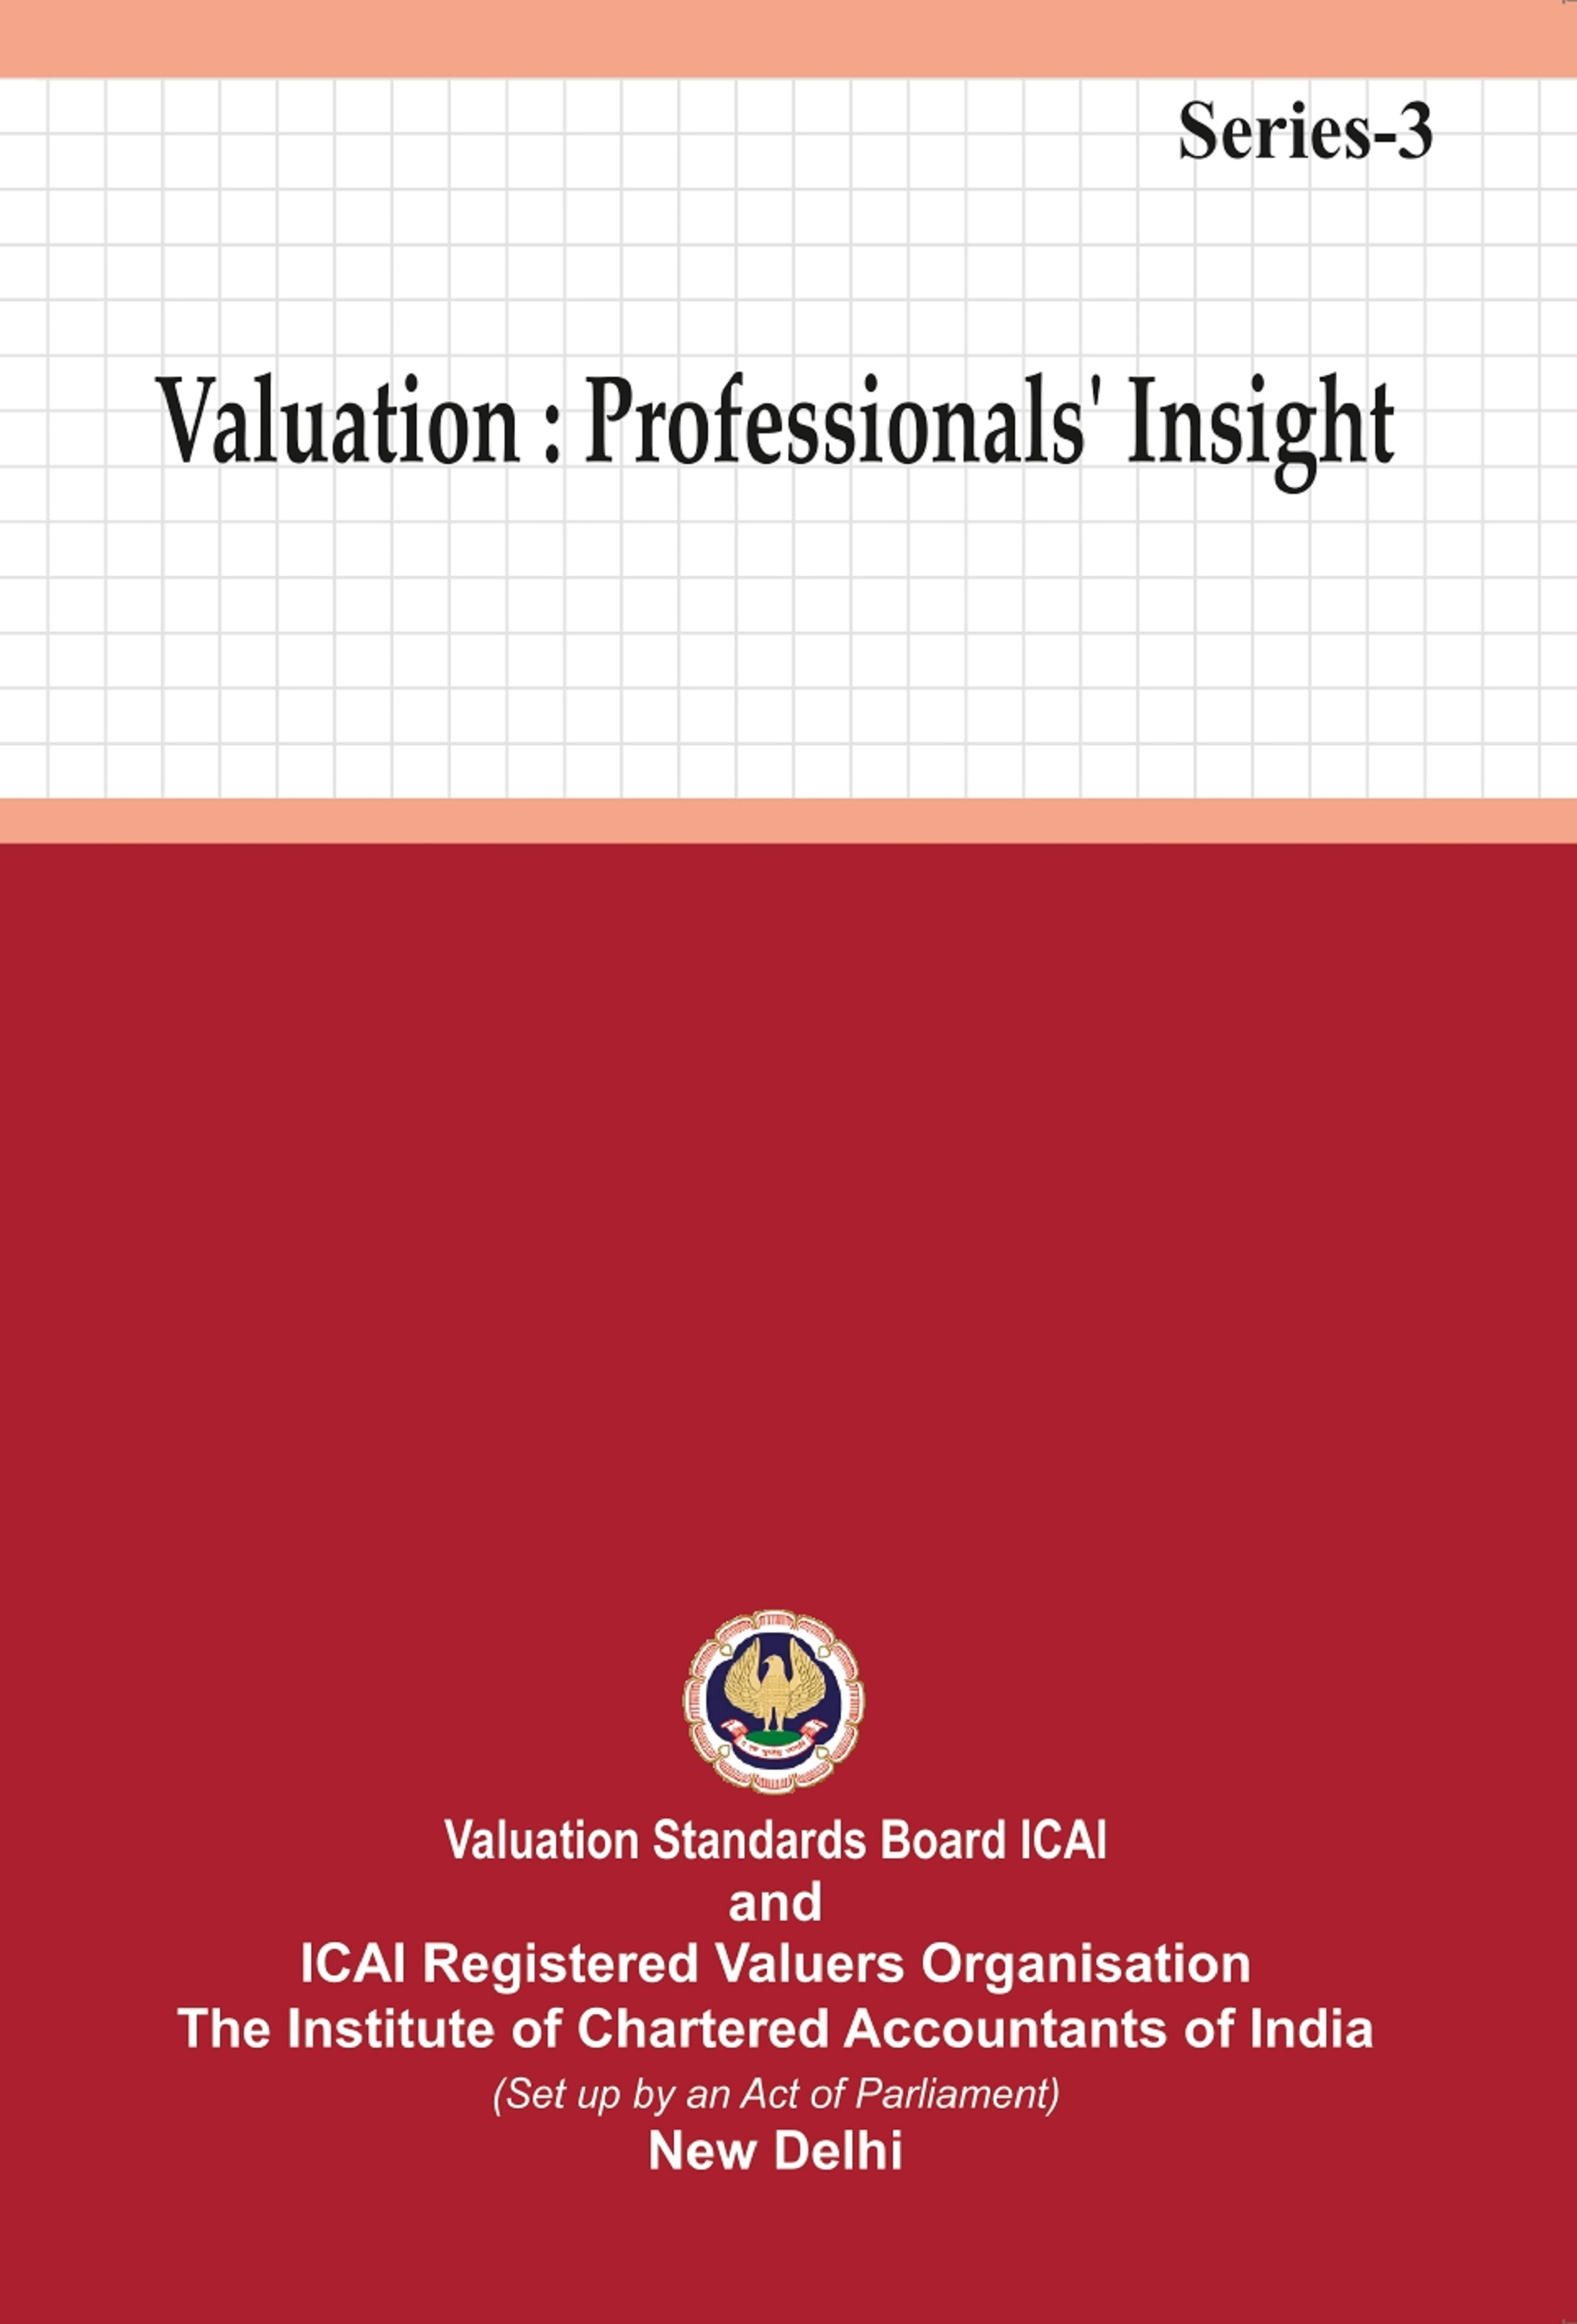 Valuation: Professionals' Insight - Series-3 (July, 2019 Edition)